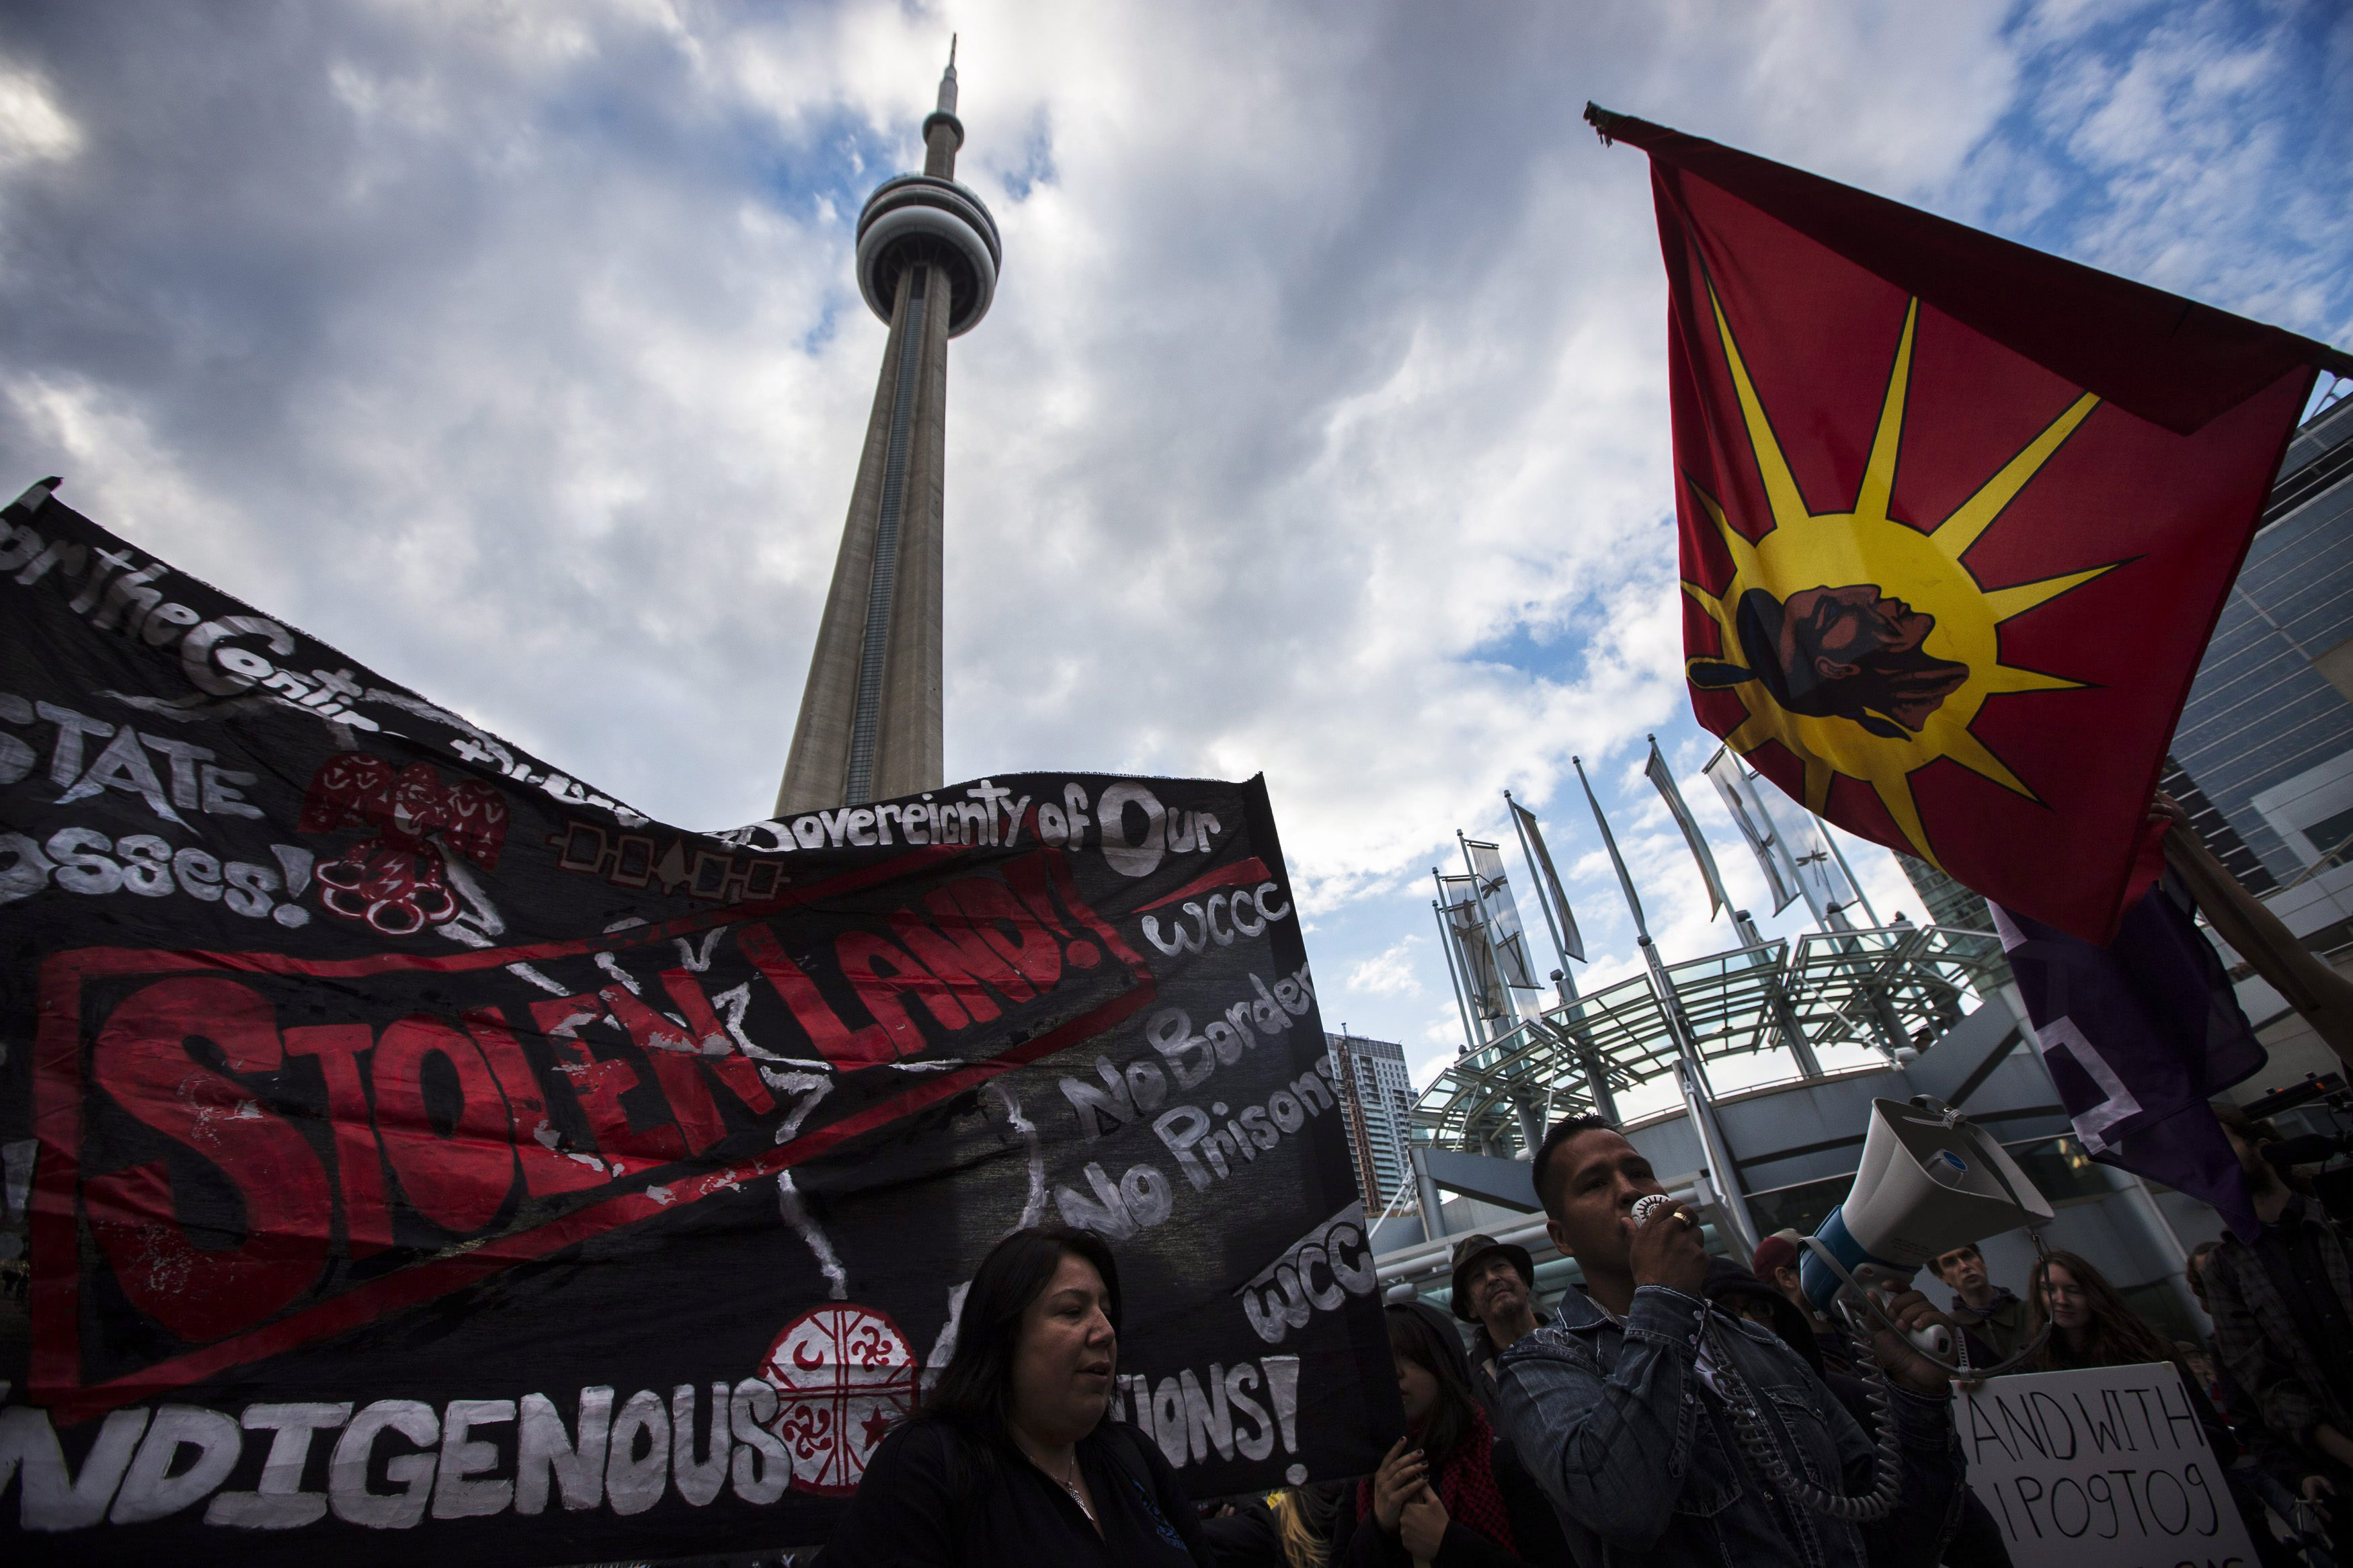 In this Friday, Oct. 18, 2013 photo, indigenous people protest outside the National Energy Board public hearings on Enbridge Line 9 oil pipeline, in Toronto. Canada is facing a crisis over aboriginal issues despite years of efforts to overcome tensions and address social problems, a U.N. expert who recently visited the country said Monday, Oct. 21, 2013. (AP Photo/The Canadian Press, Mark Blinch)